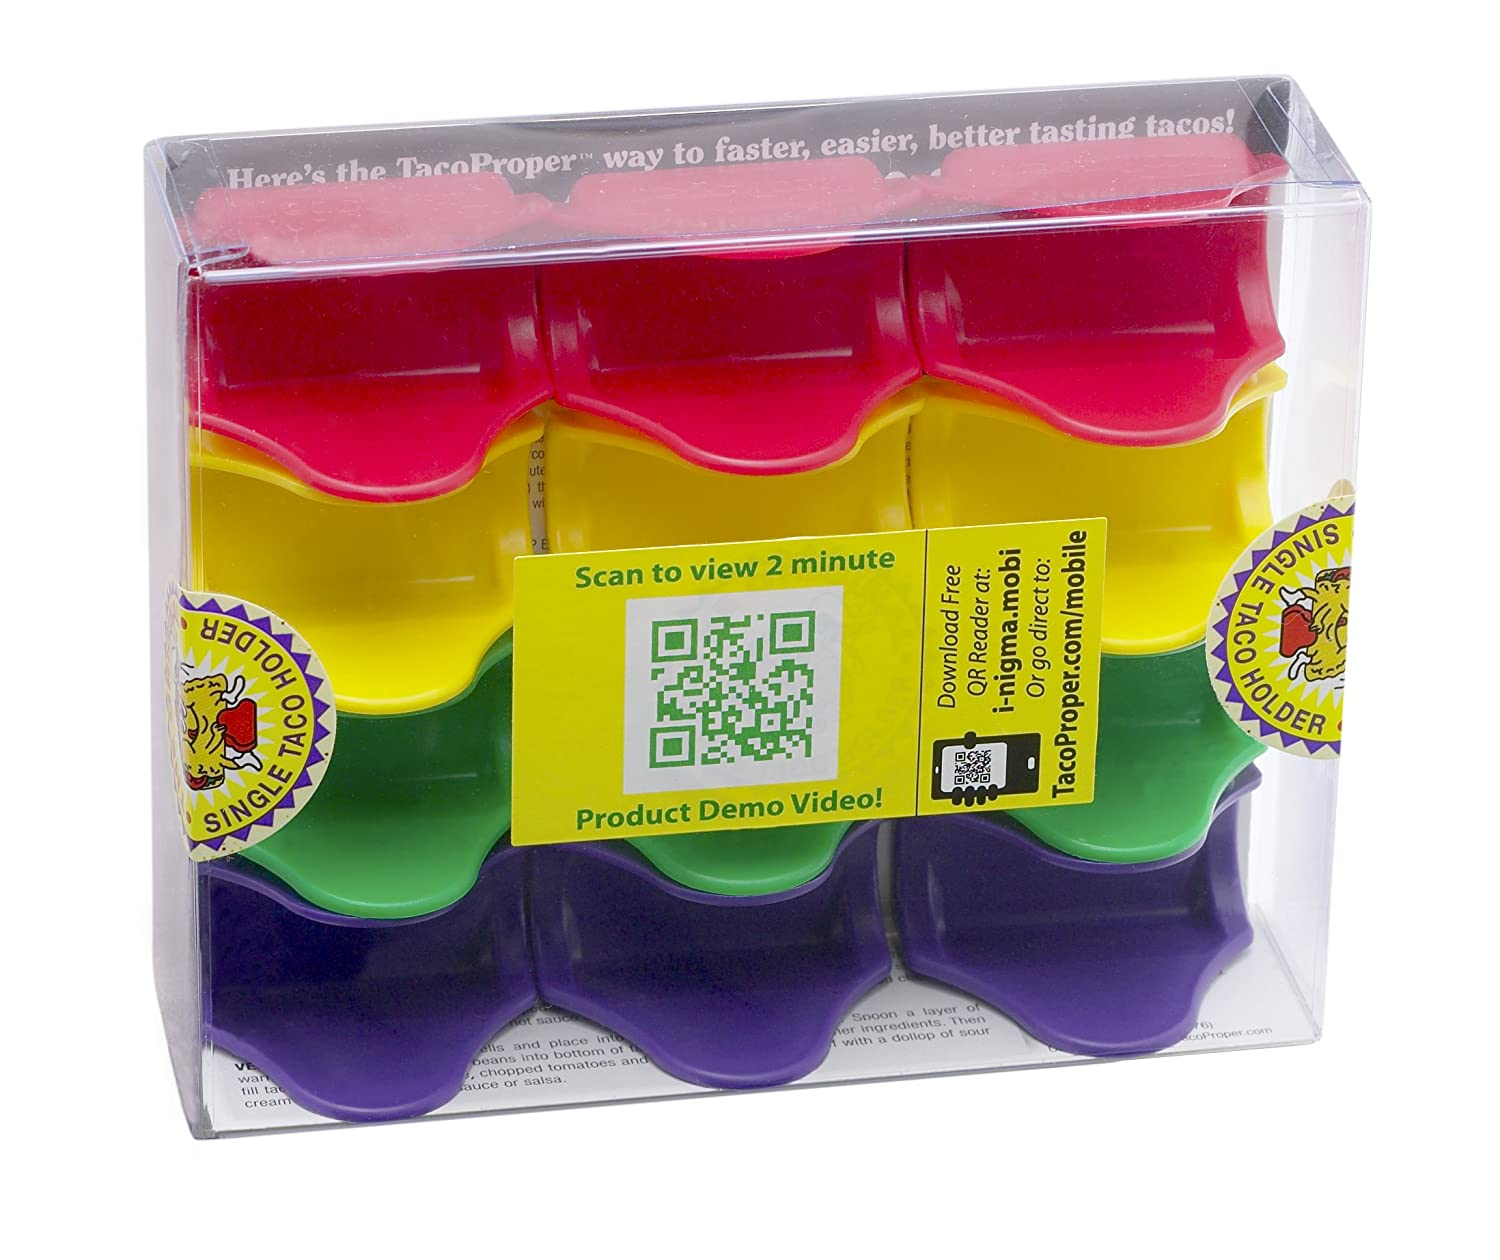 Amazon.com TacoProper Taco Holder FiestaPak Set of 12 Made in China Kitchen \u0026 Dining  sc 1 st  Amazon.com & Amazon.com: TacoProper Taco Holder FiestaPak Set of 12 Made in ...